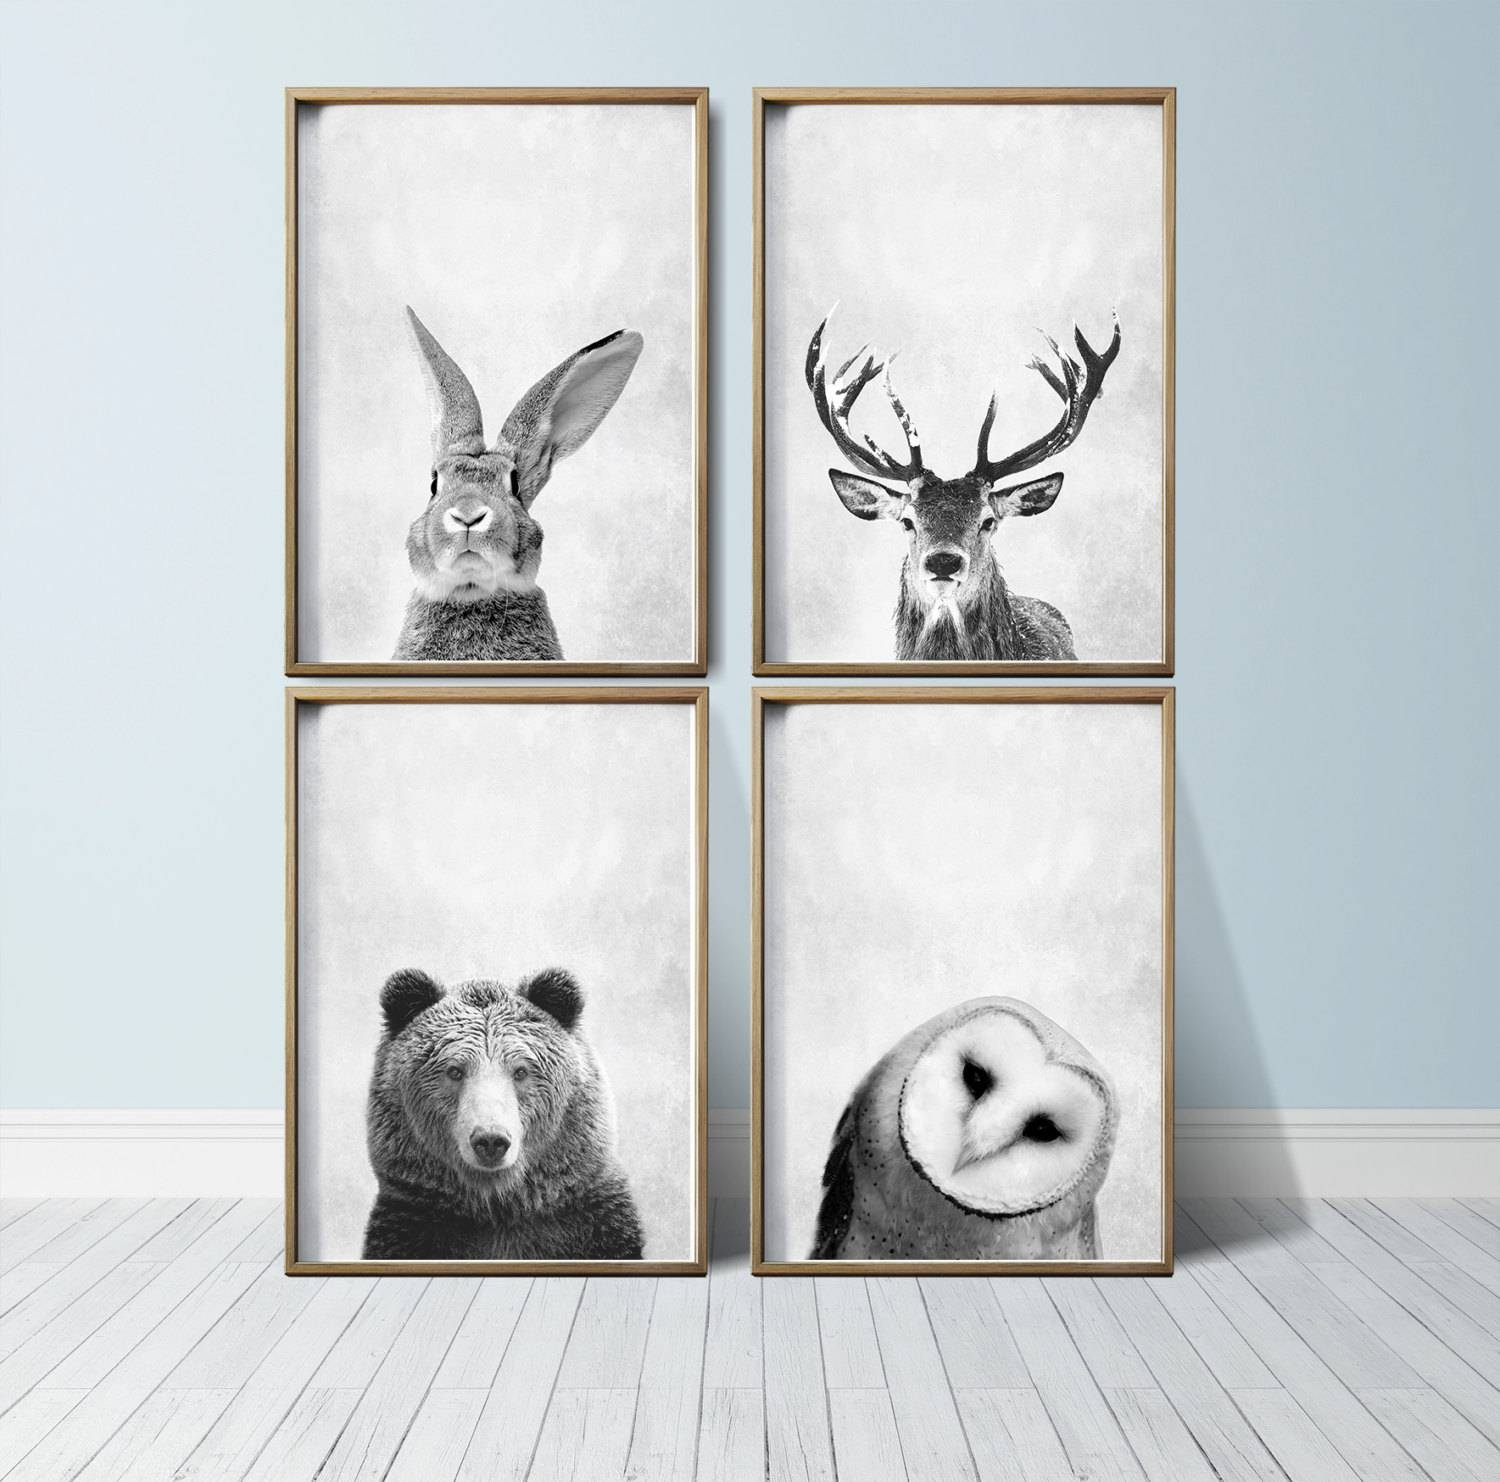 Nursery Art Nursery Deco Animal Print Art Woodland Nursery Art Inside 2018 Woodland Animal Wall Art (View 7 of 20)